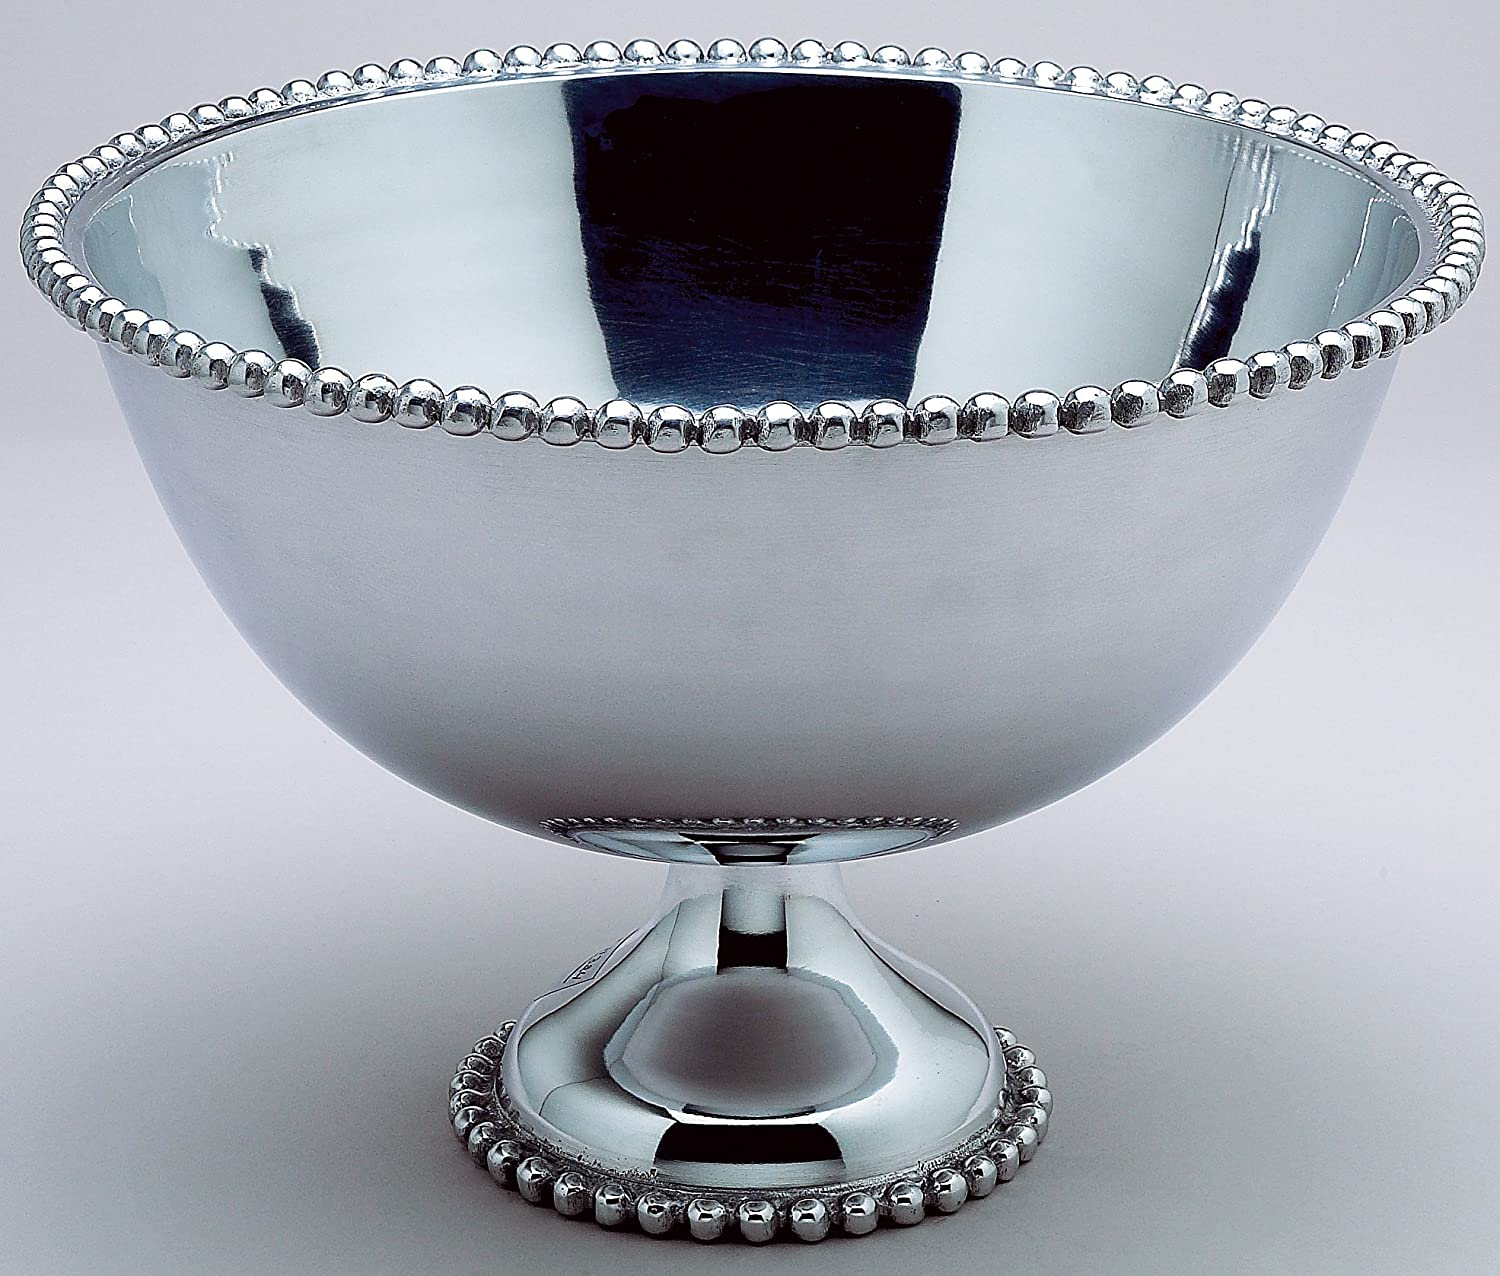 Amazon com kindwer huge beaded aluminum punch bowl 16 inch silver punch bowls